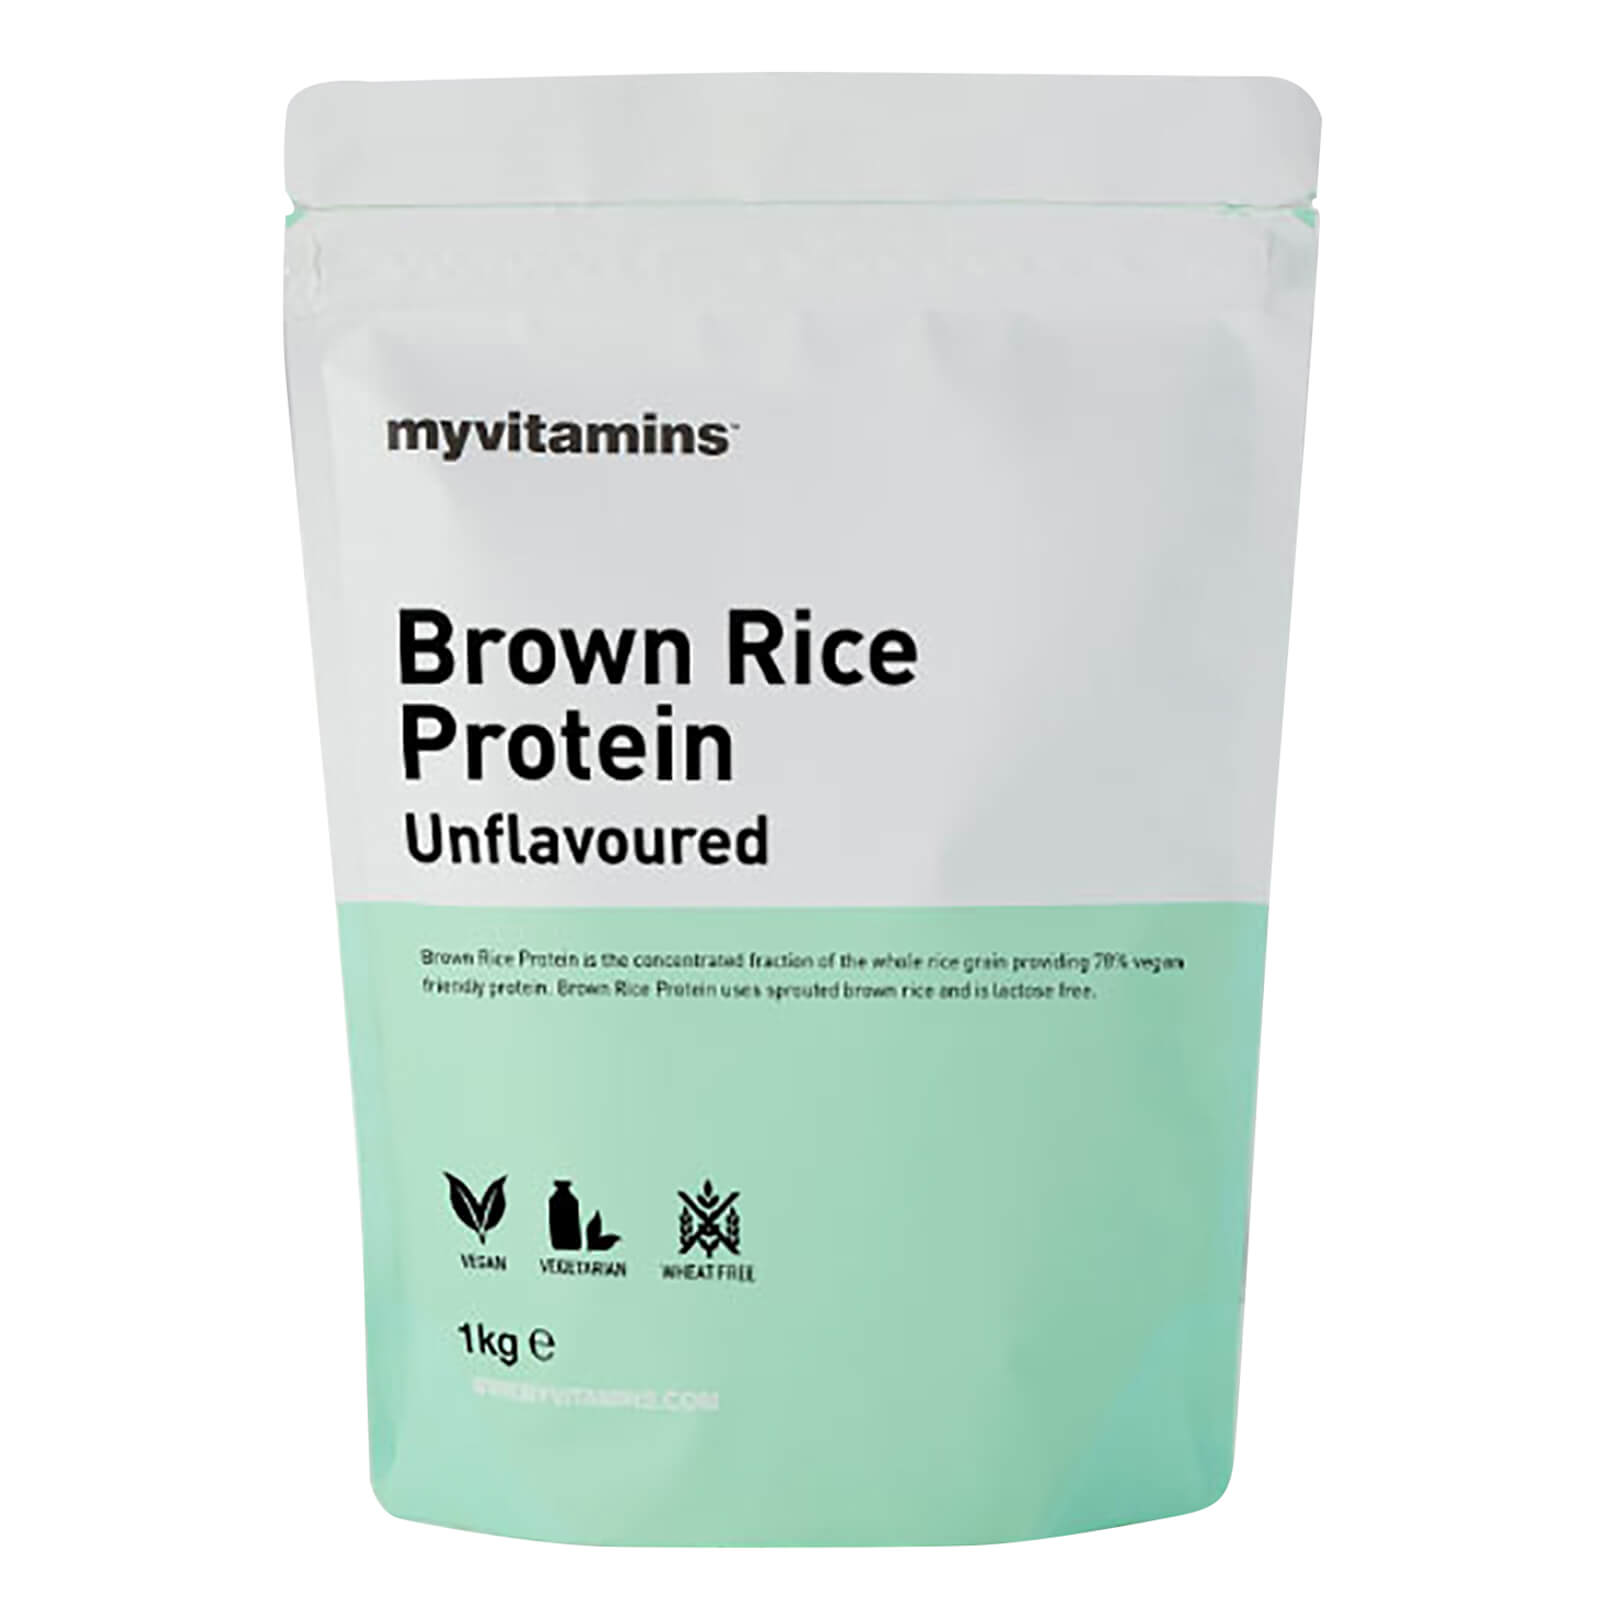 Brown Rice Protein - Unflavoured 1kg